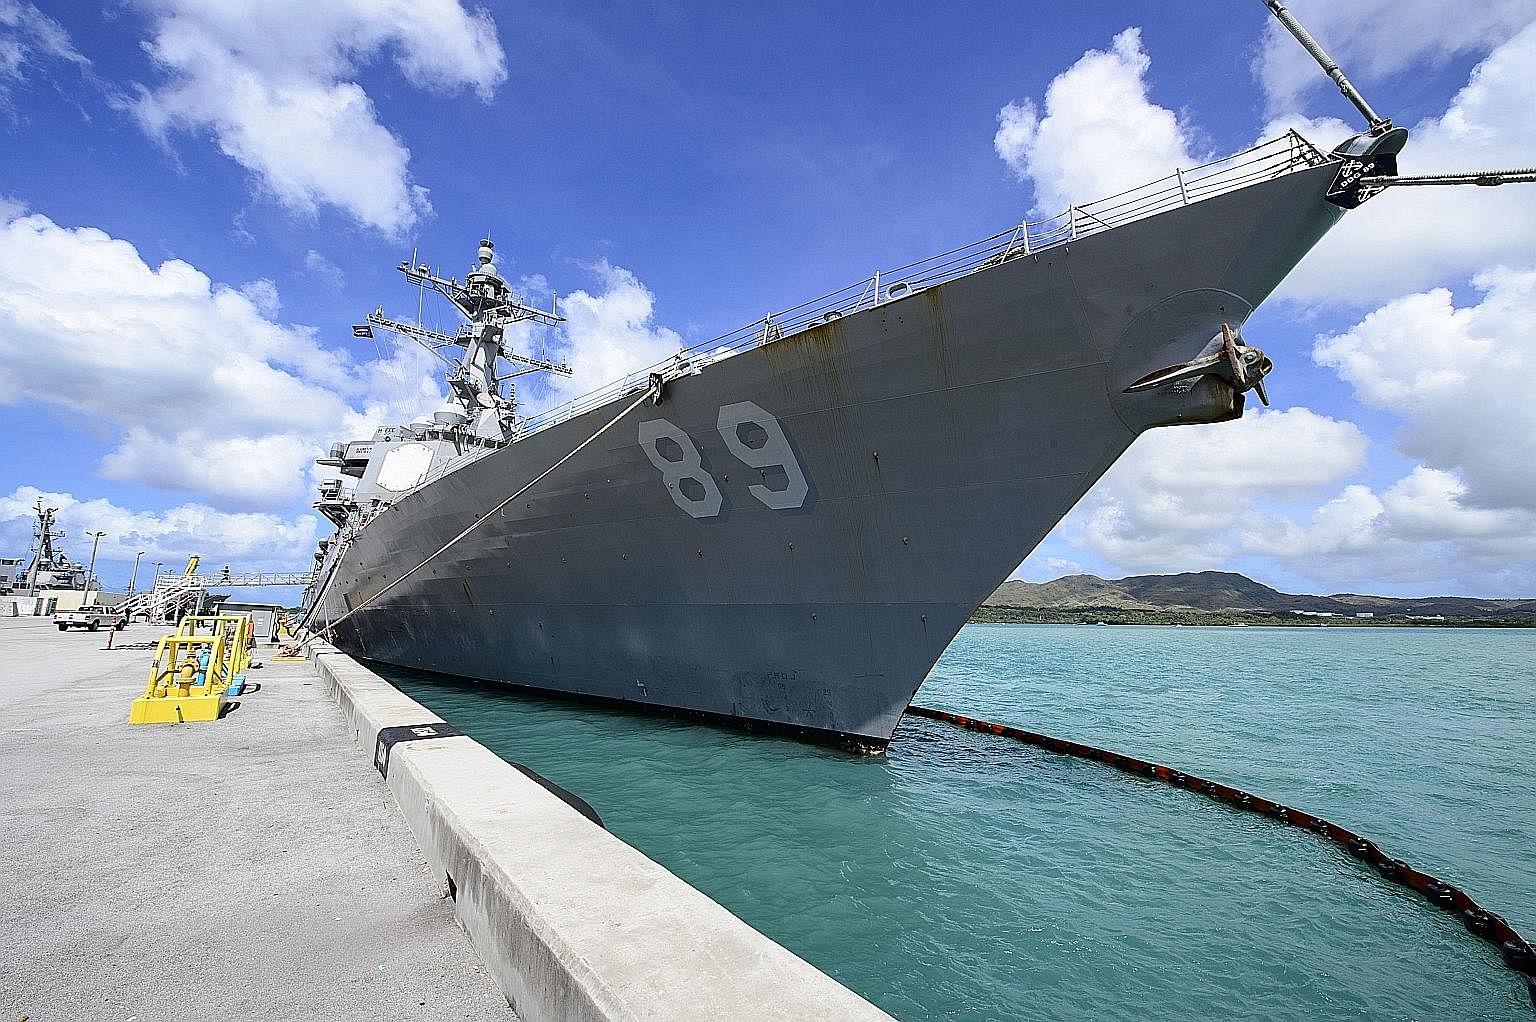 The US Navy's destroyer Mustin carried out a freedom of navigation operation in March last year, coming within 12 nautical miles of an artificial island built by China in the South China Sea. The US-China rivalry is seen as a disruptive factor in the